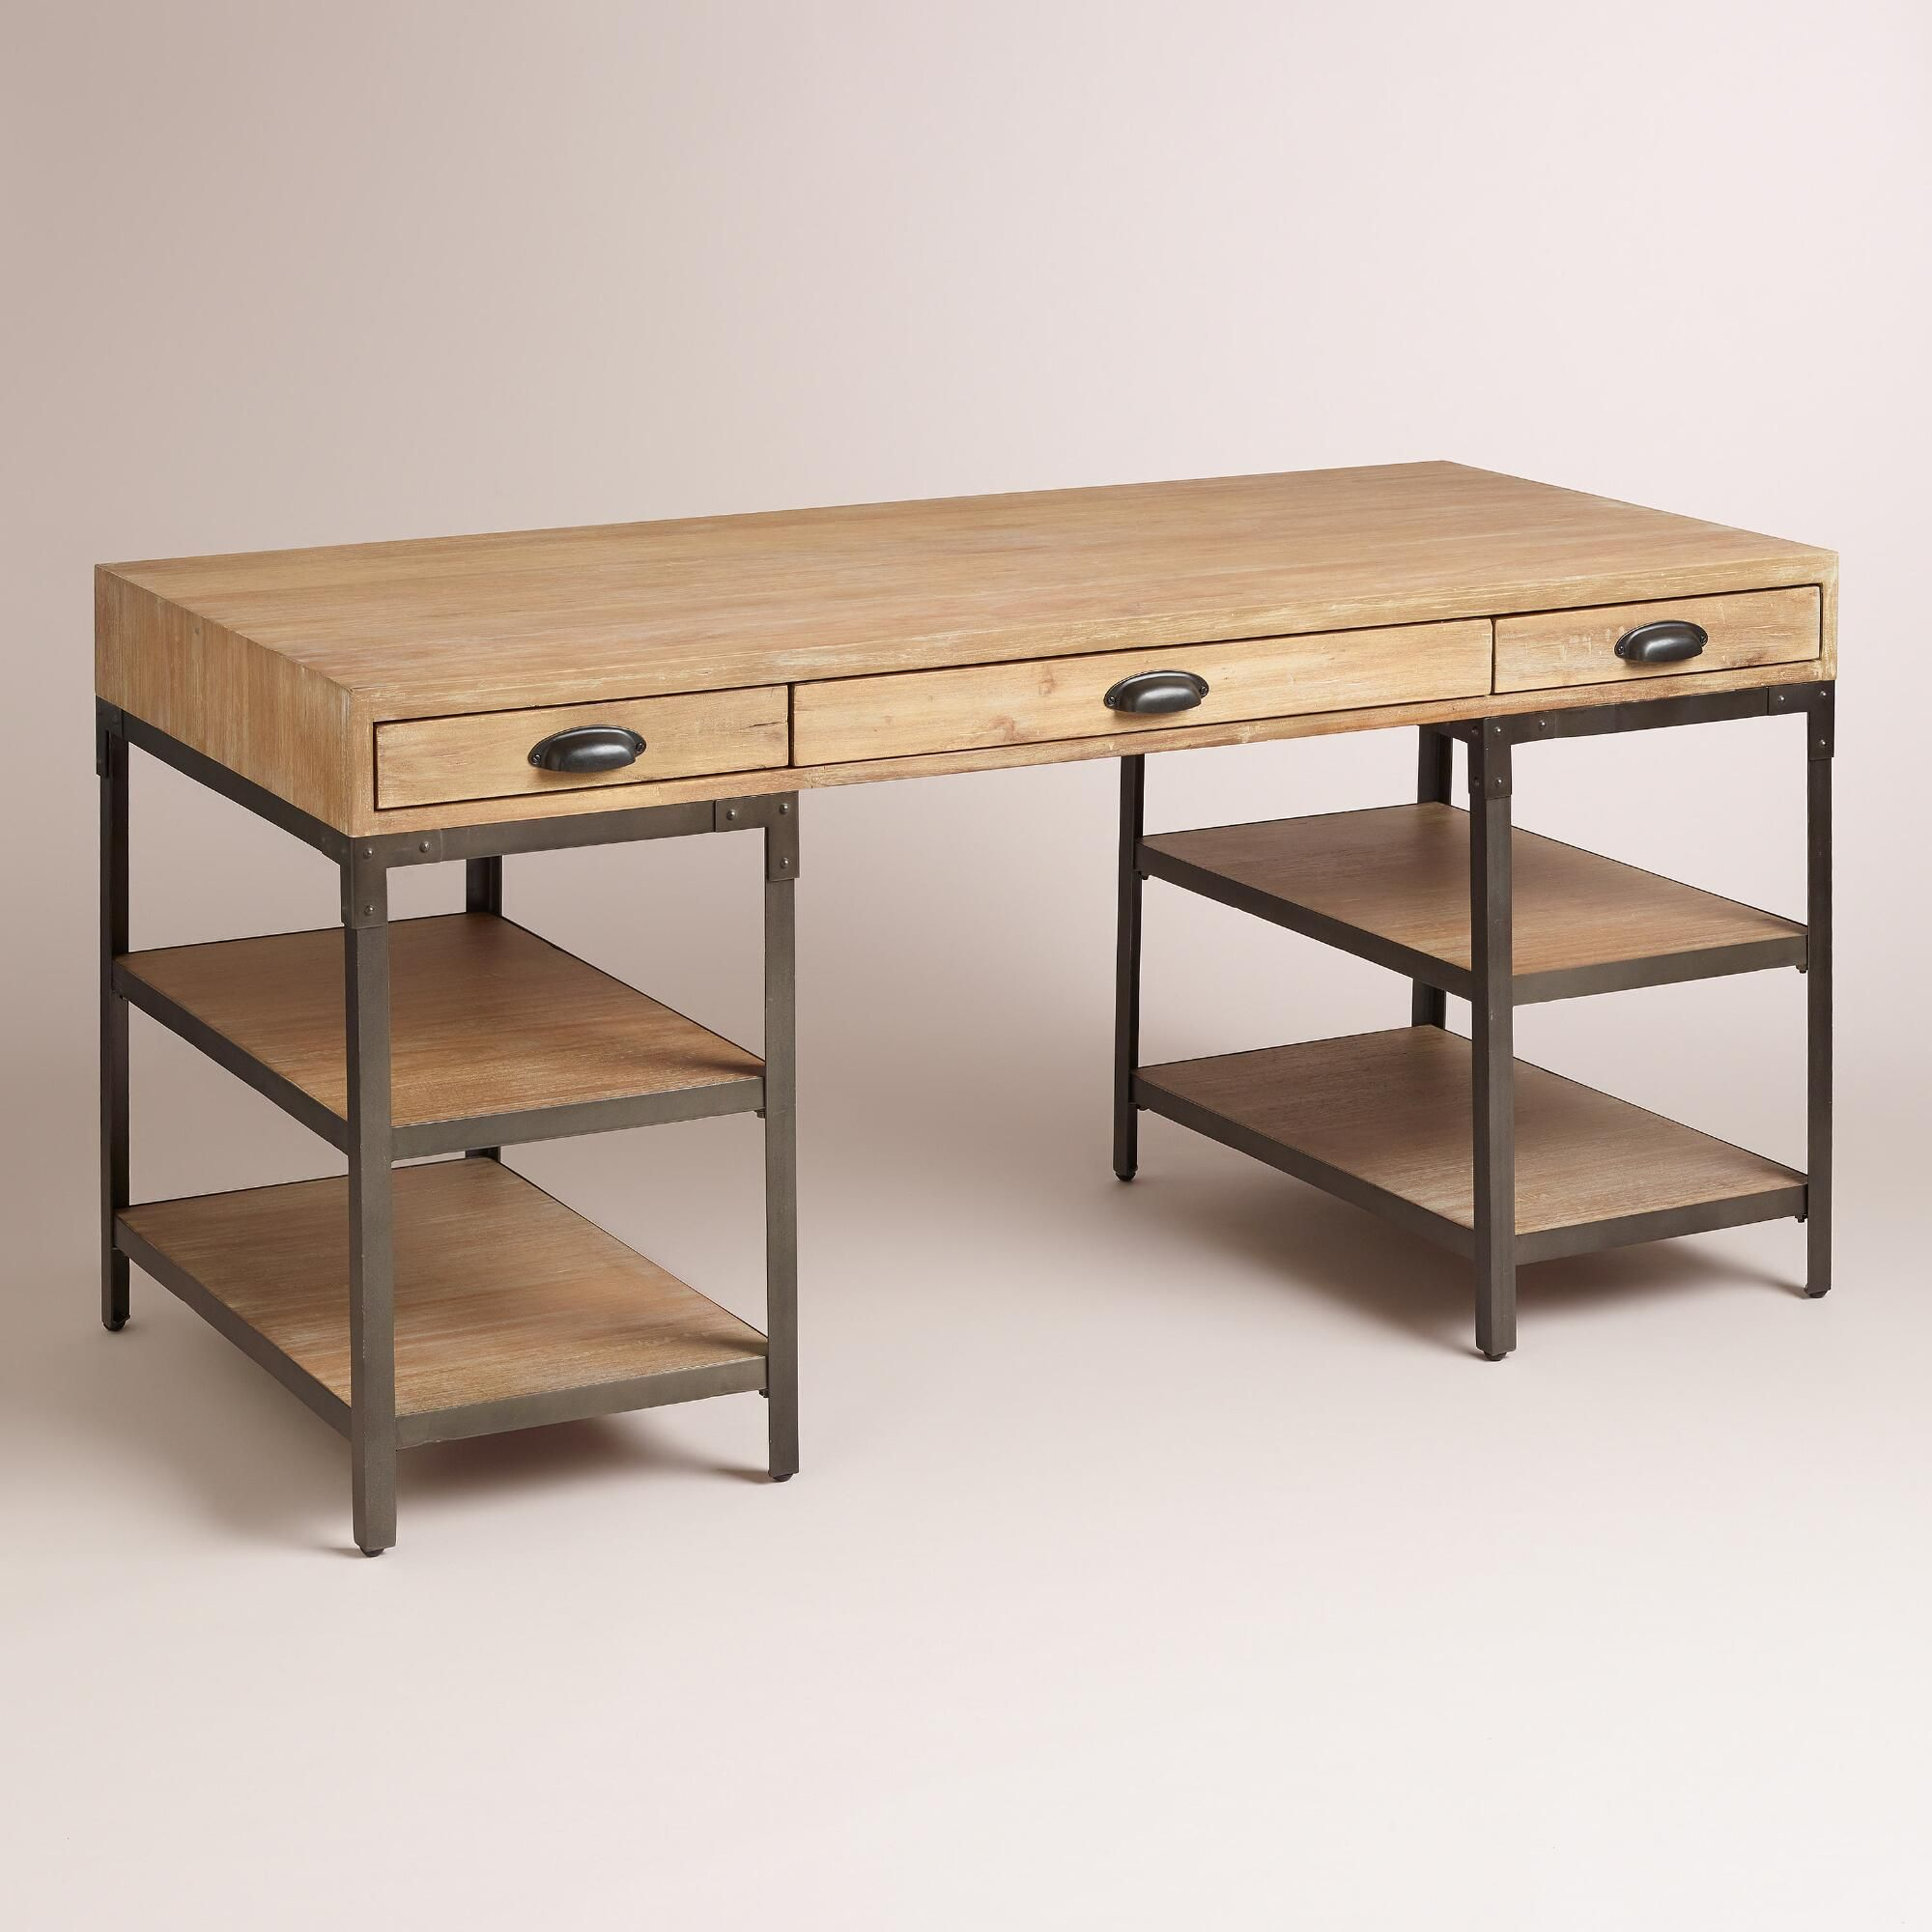 Wood And Metal Teagan Desk Cheap Office Furniture Wood And